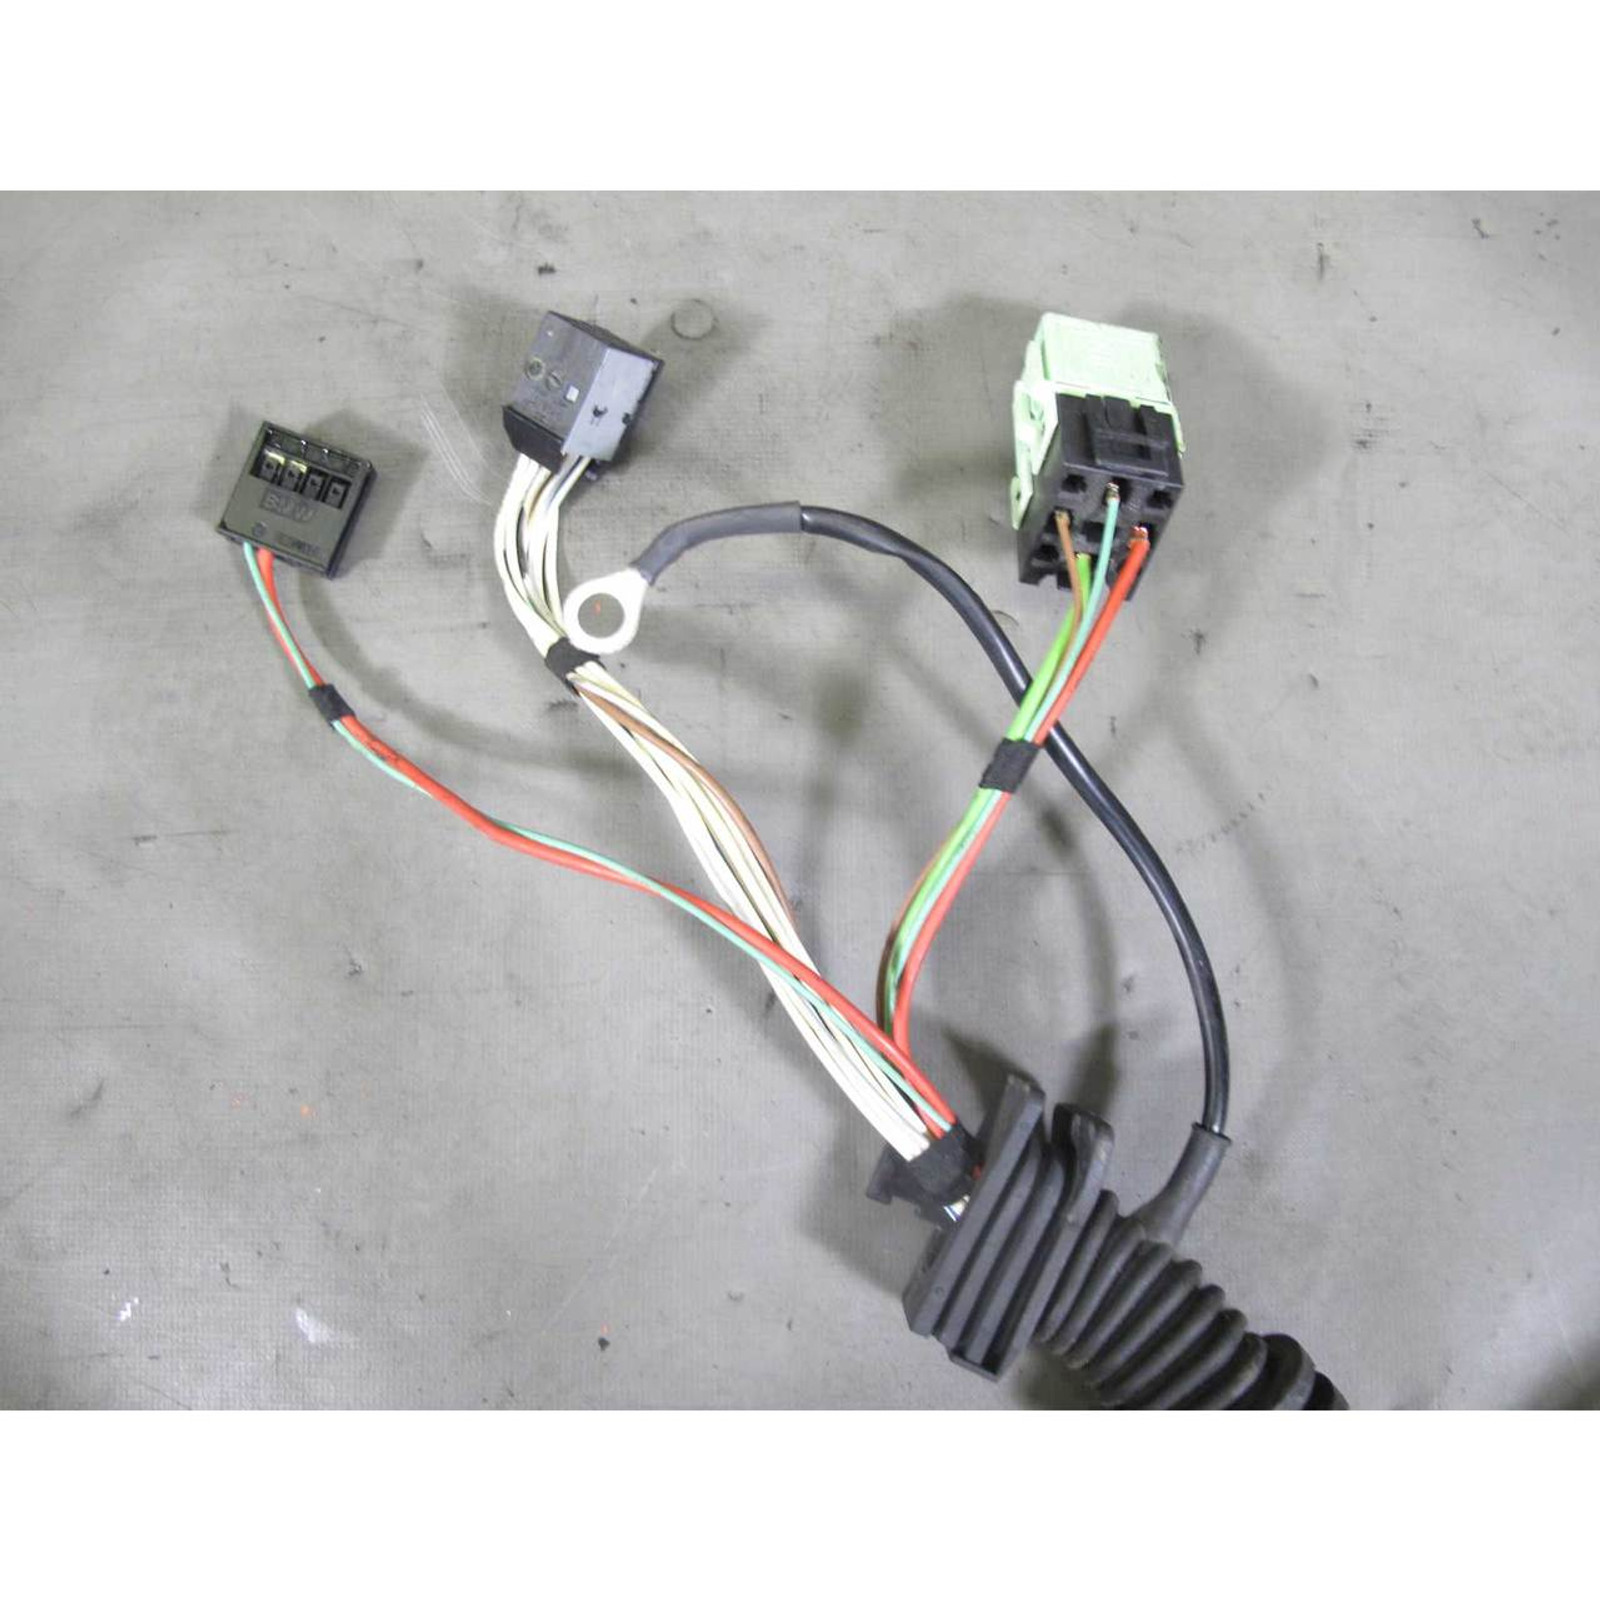 small resolution of wrg 4274 bmw e70 wire charging harness2007 2010 bmw e70 x5 4 8i n62tu v8